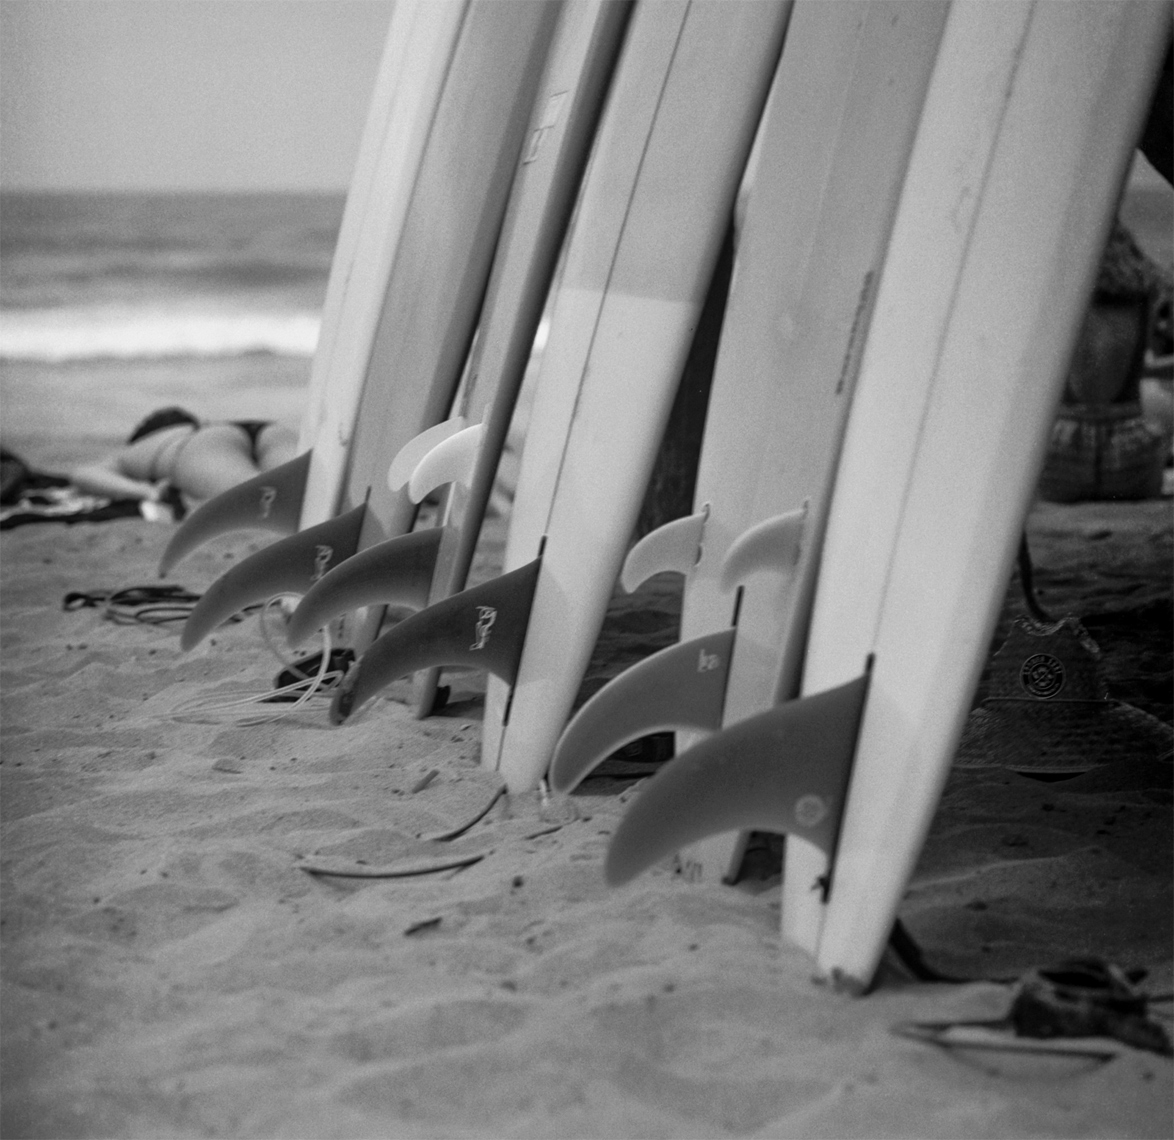 SanO_BoardsOnTheHut04_Fins_Lifestyle_Retouched_Web